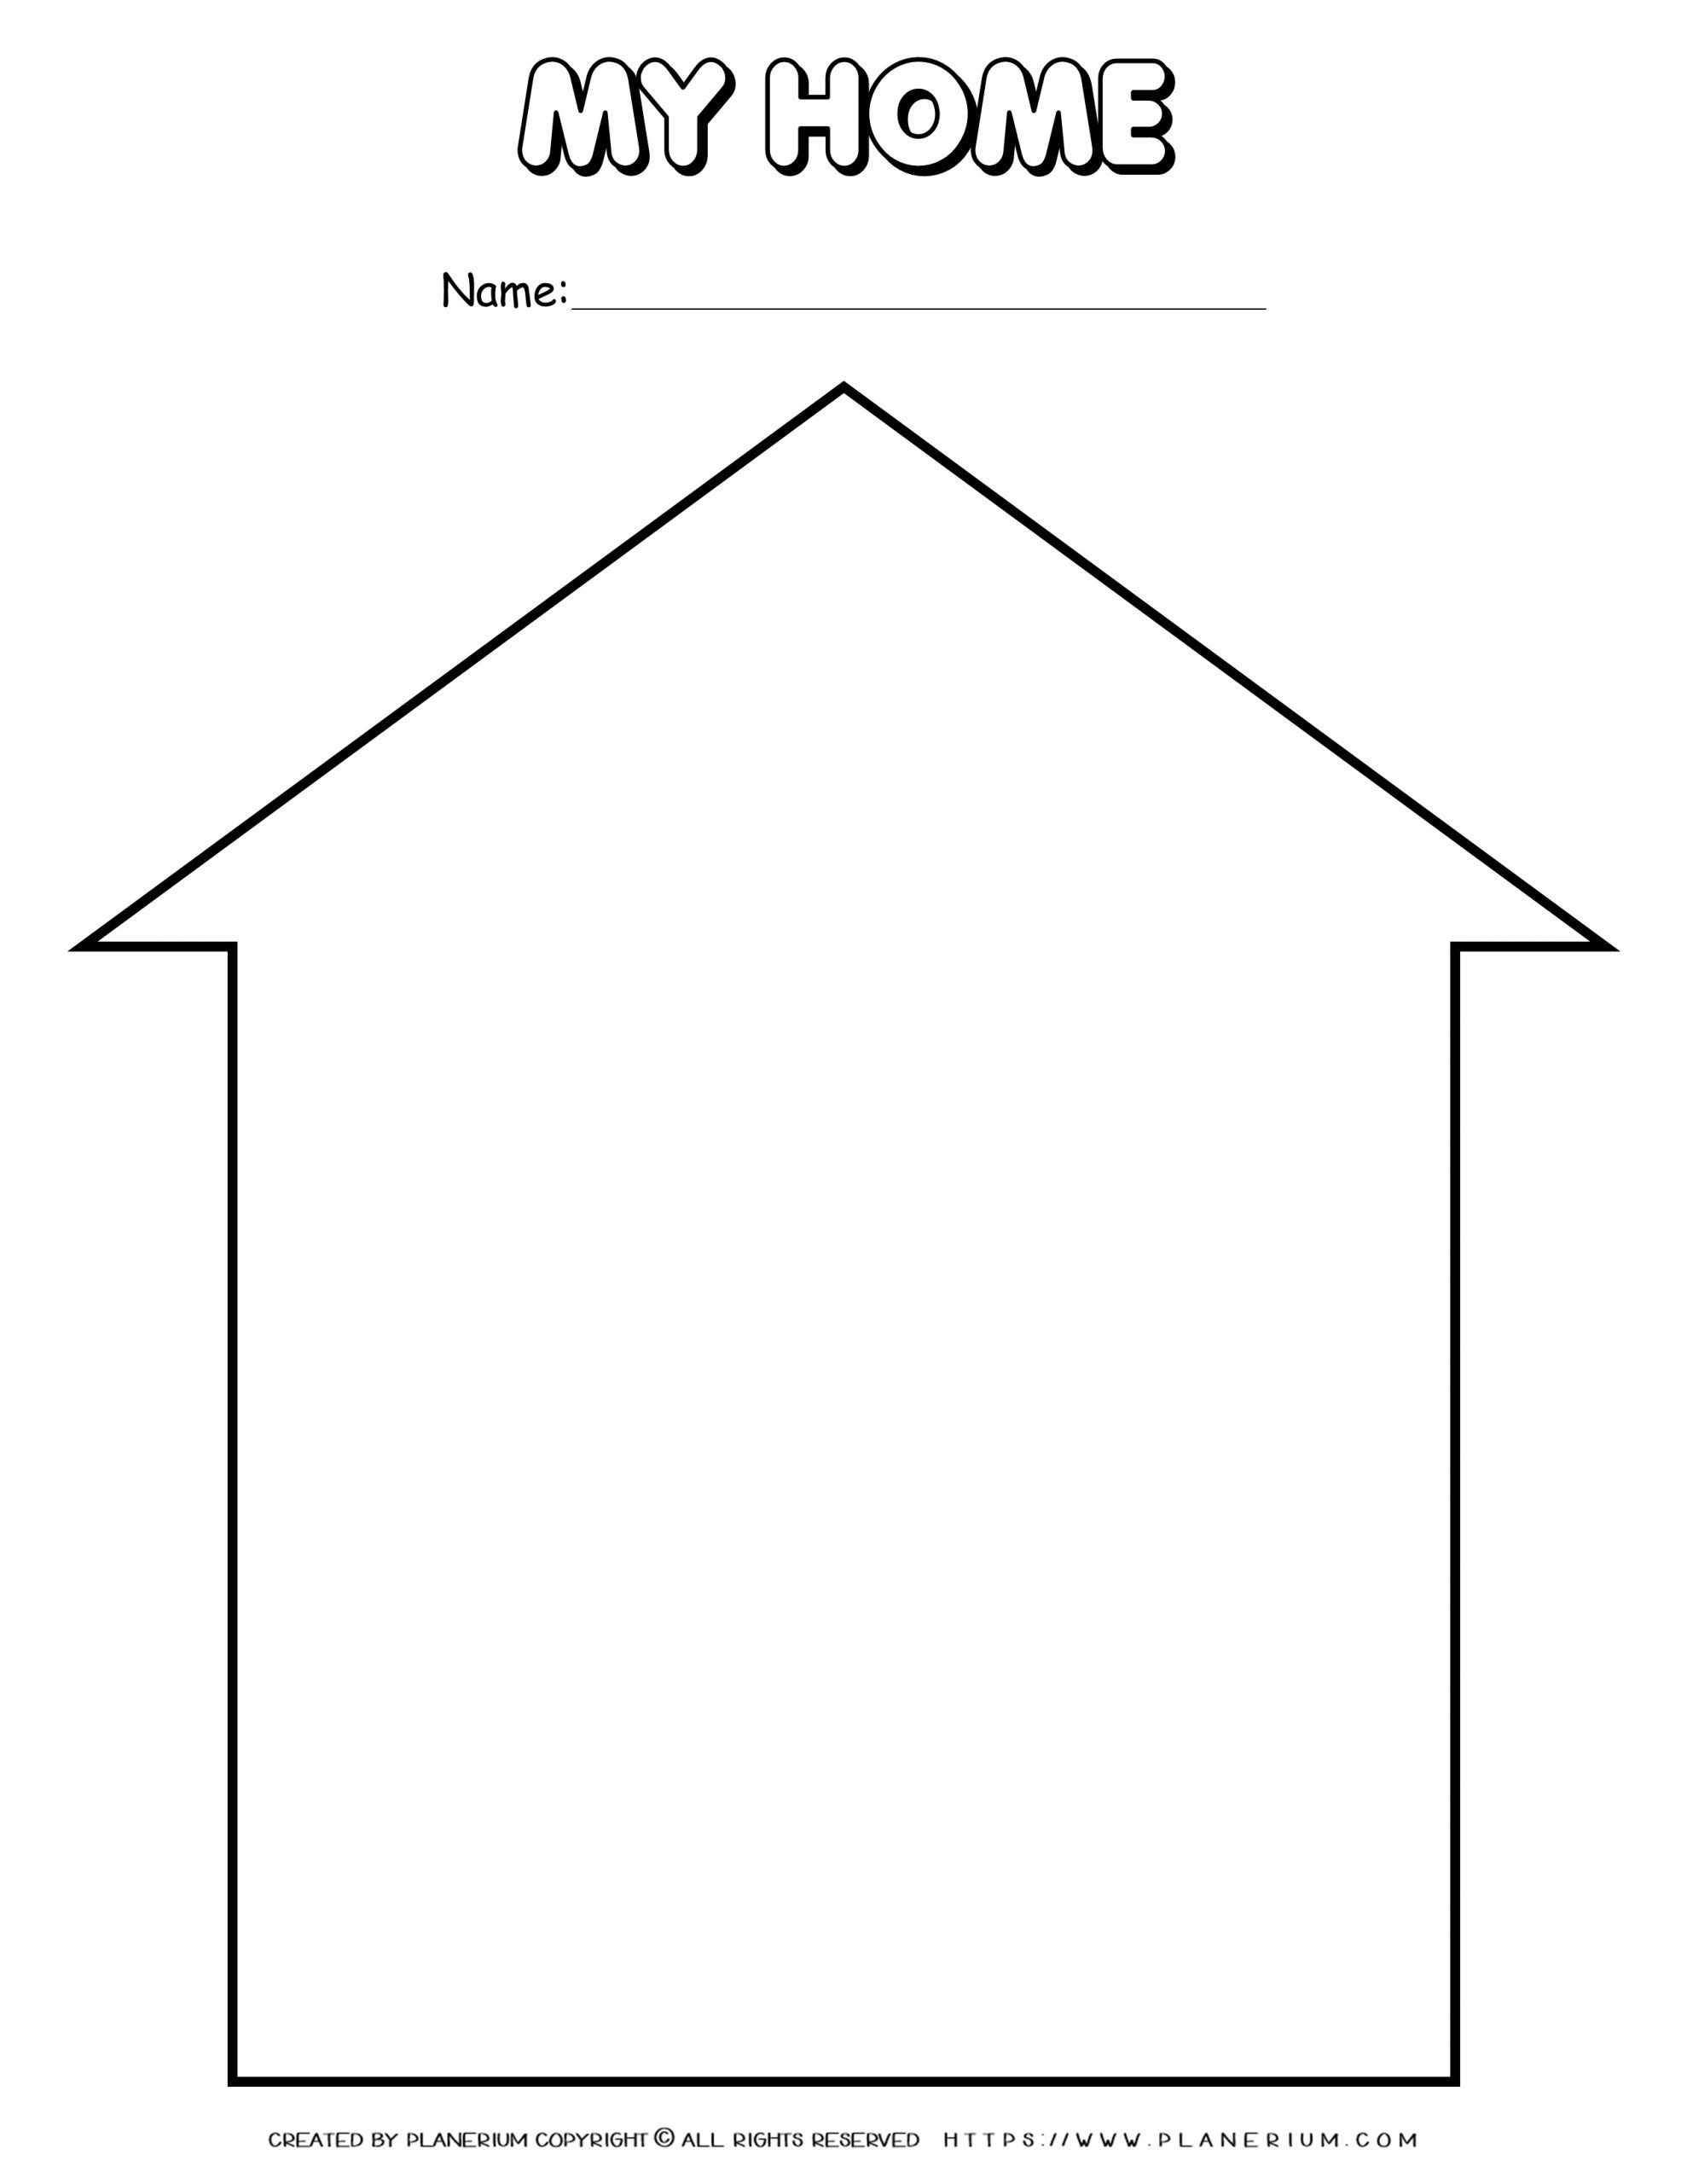 My Home - Worksheet - House Frame Template